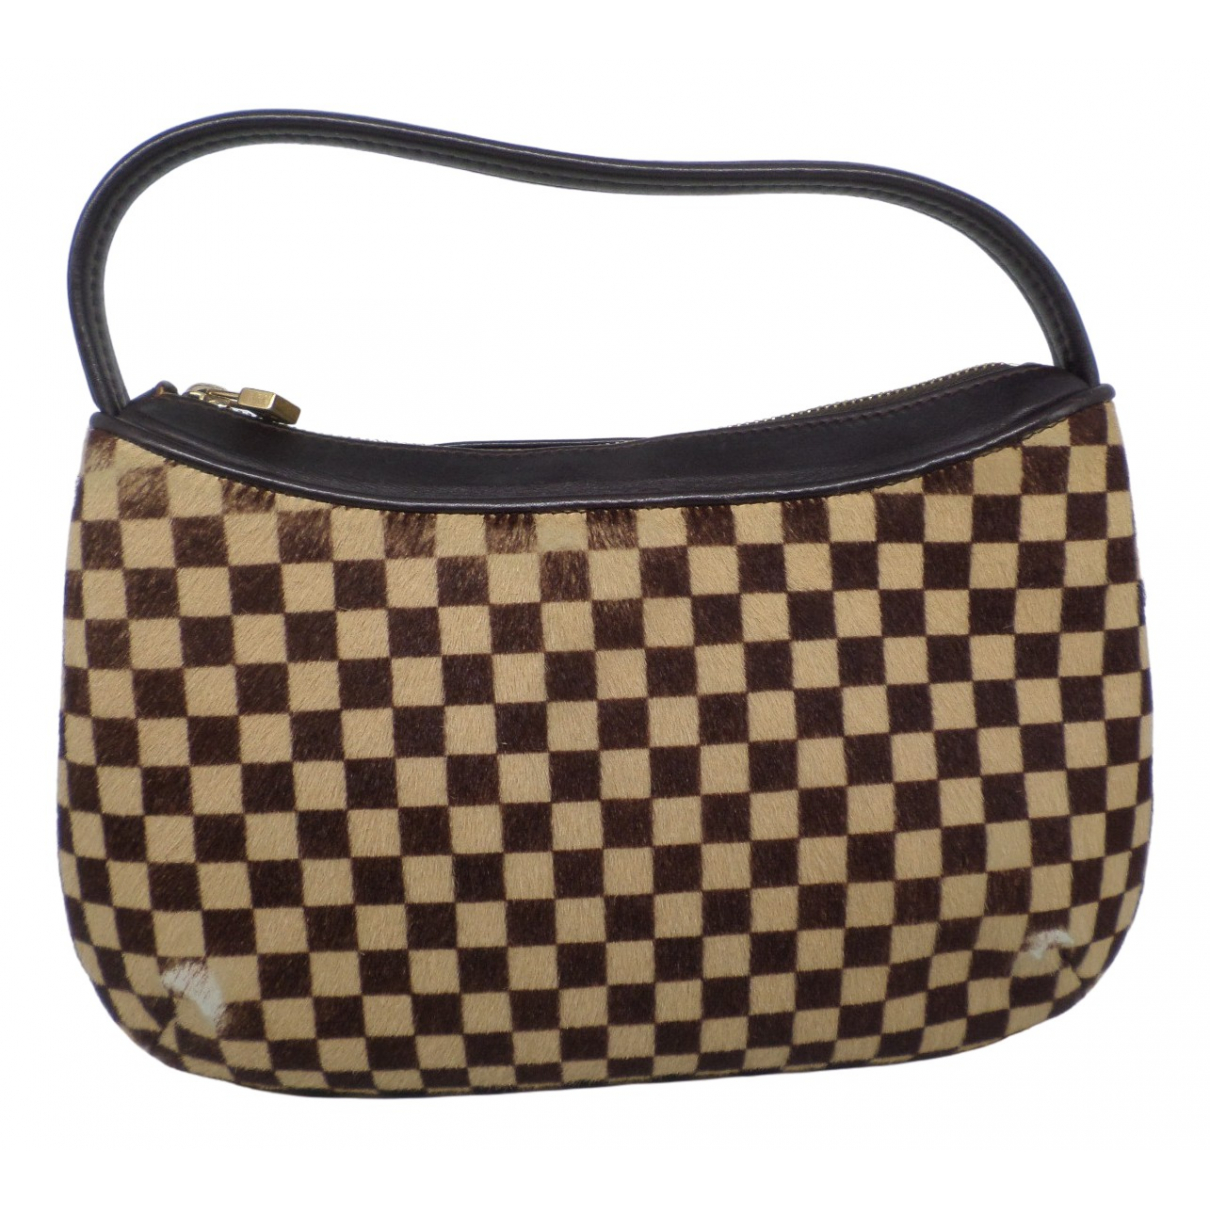 Louis Vuitton \N Brown Pony-style calfskin handbag for Women \N